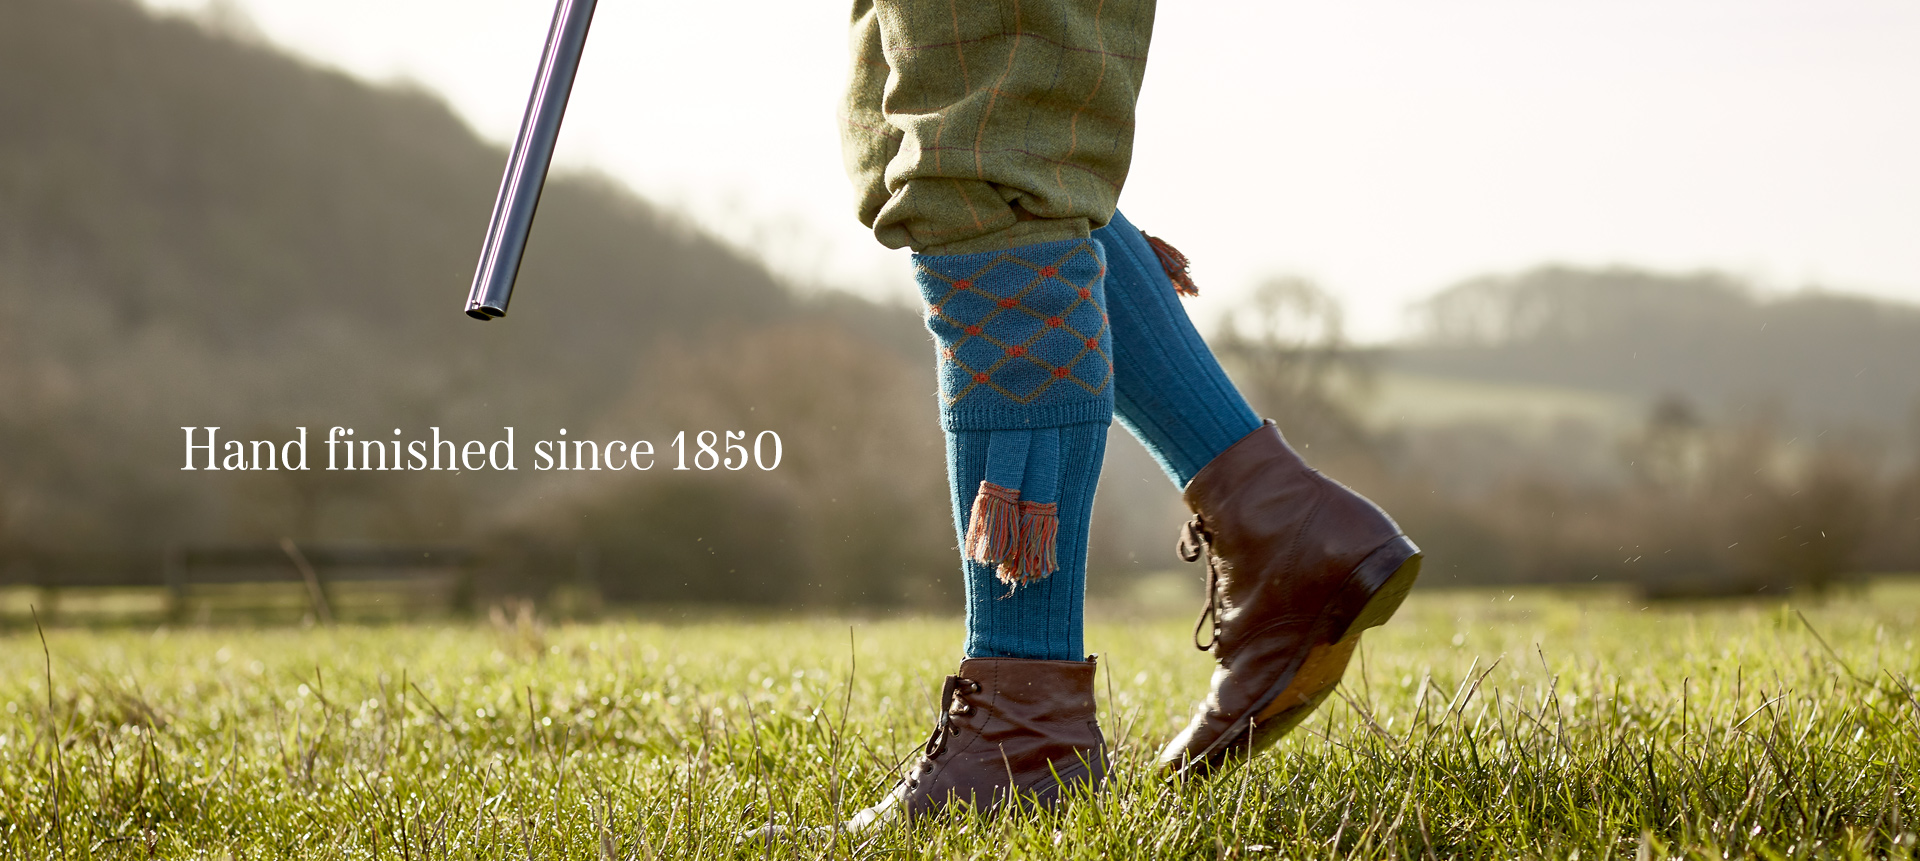 Pennine Shooting Socks have been made using the finest materials and finished by hand with unique designs since 1850. Take a look through our socks and garters